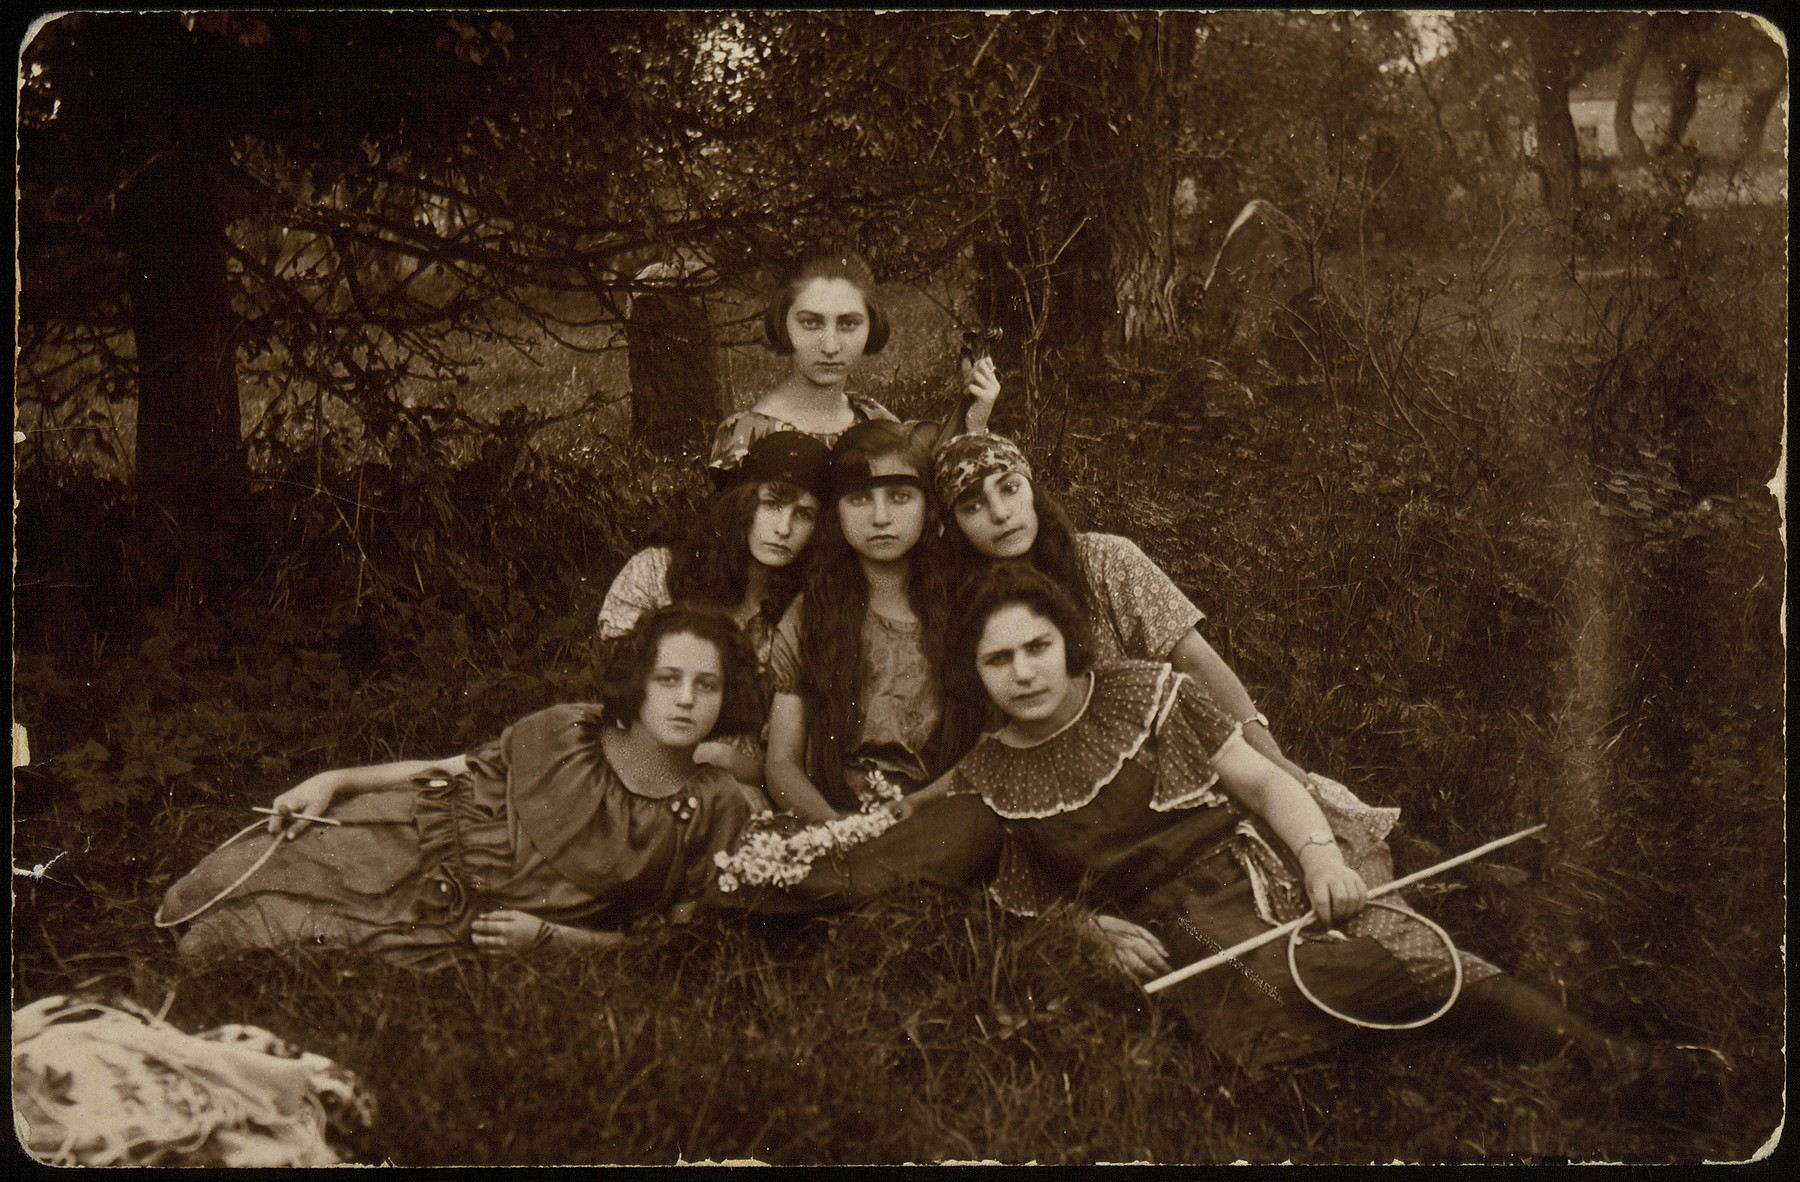 Six friends who were members of Club 21.    In 1921, twenty-one teenage girls, all Hebrew students established an apolitical friendship society and named it  Club 21.  Their younger sisters decided to establish a similar club, simply named Our Circle.  Many of these young women emigrated or moved to larger towns during the 1930s.   Zipporah Katz (later Sonenson) is on top.  Front row on the left is Matle Sonenson (later Shereshefski), sister-in-law of Zipporah Katz Sonenson. Zipporah Katz Sonenson was murdered by the Polish Home Army in October 1944 after the liberation of Eisiskes. Matle Sonenson Shereshefski survived in Siberia and later immigrated to the United States.